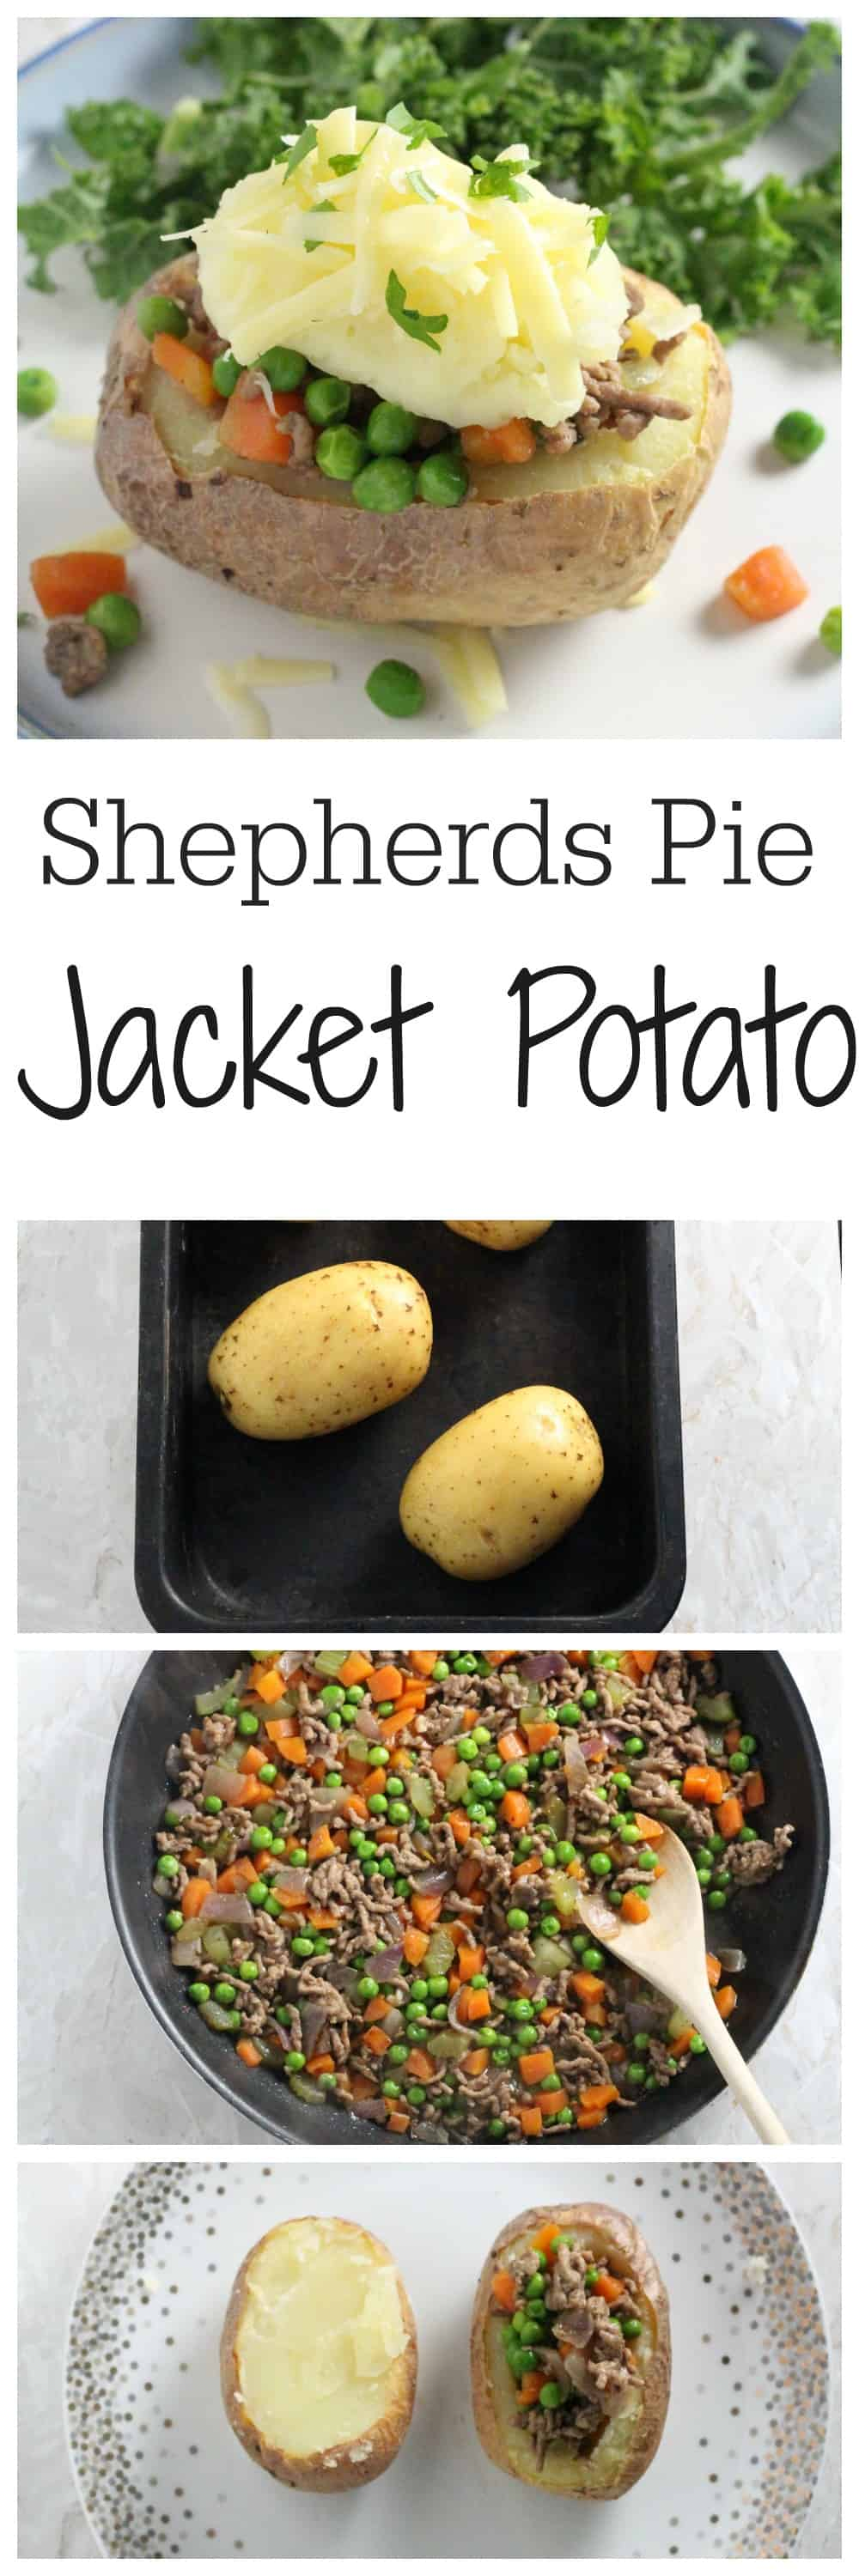 A fun teatime treat for the whole family; jacket potatoes baked in the oven and filled with a delicious shepherds pie filling | My Fussy Eater blog